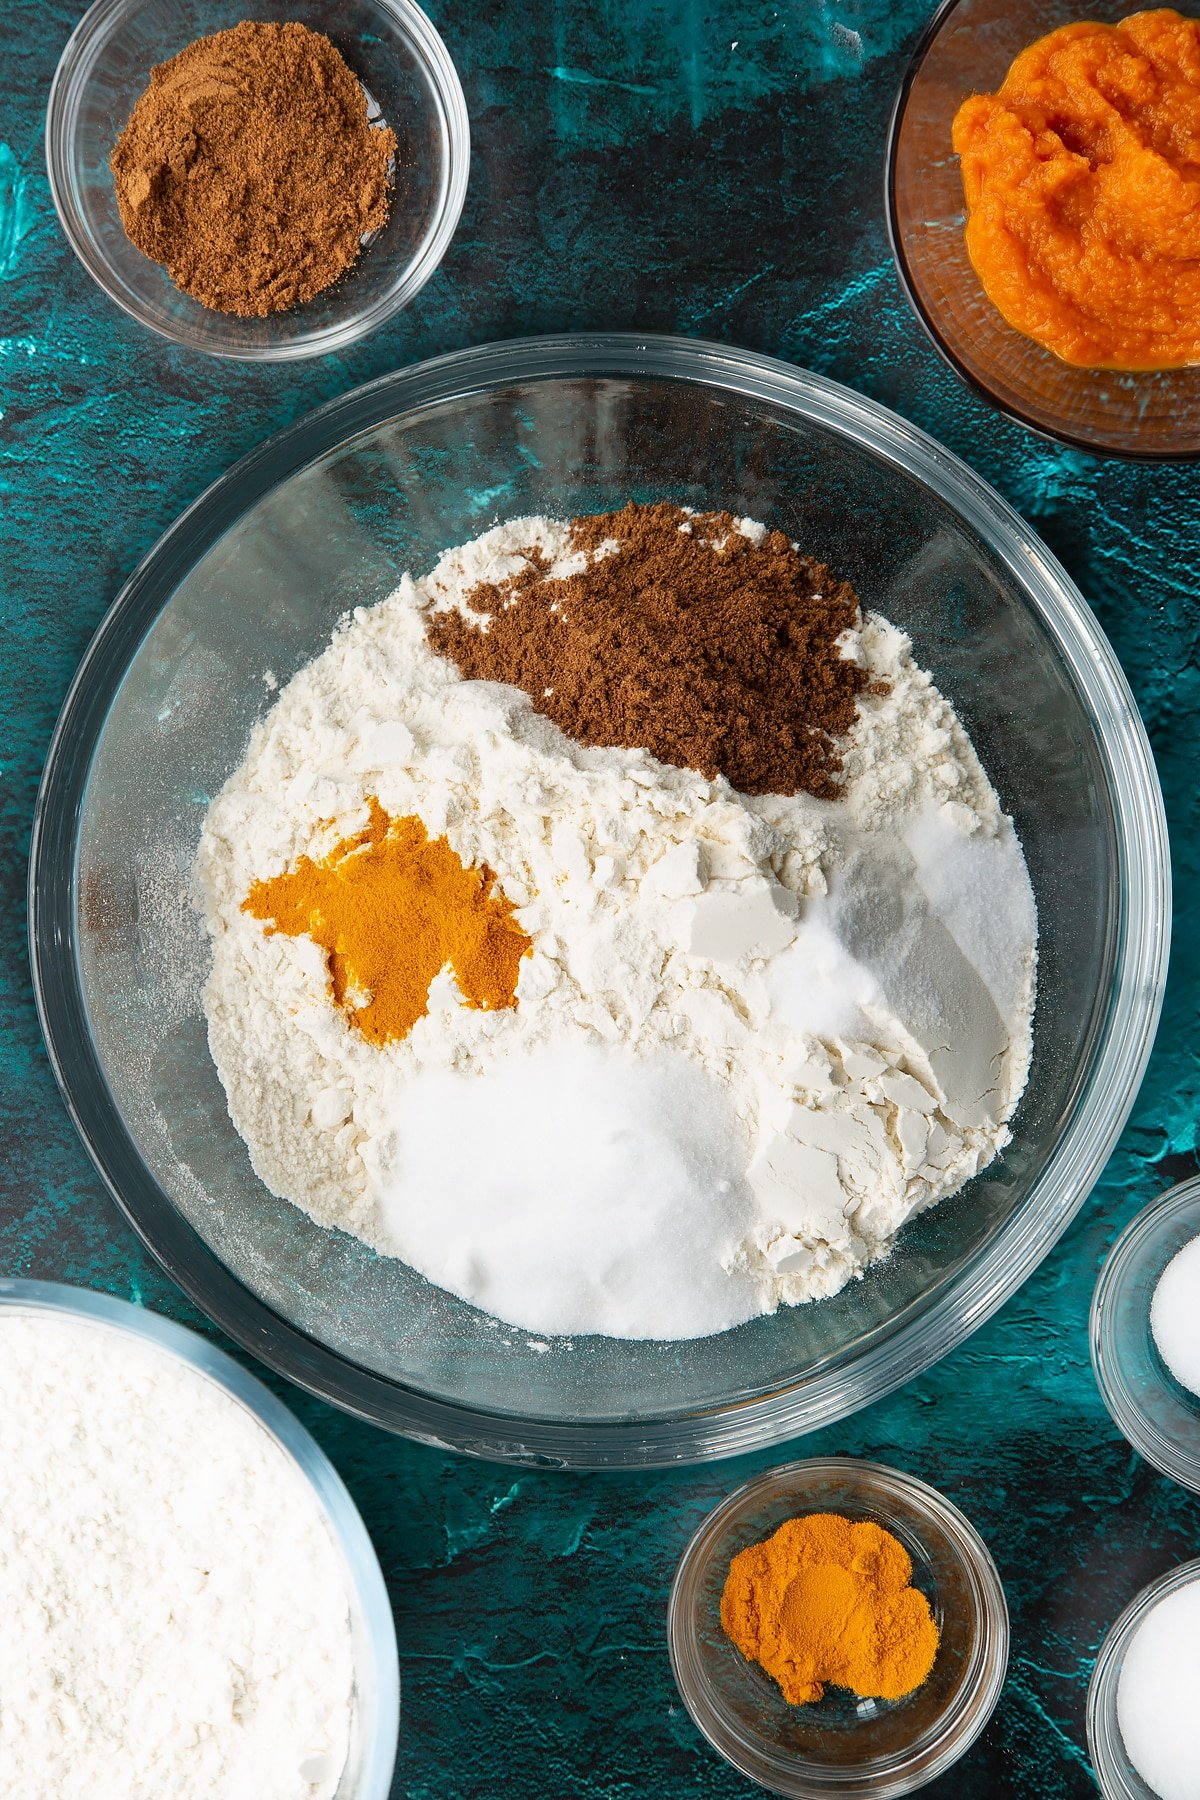 Flour, sugar, salt, mixed spice and turmeric in a bowl. Ingredients to make pumpkin sourdough bread surround the bowl.